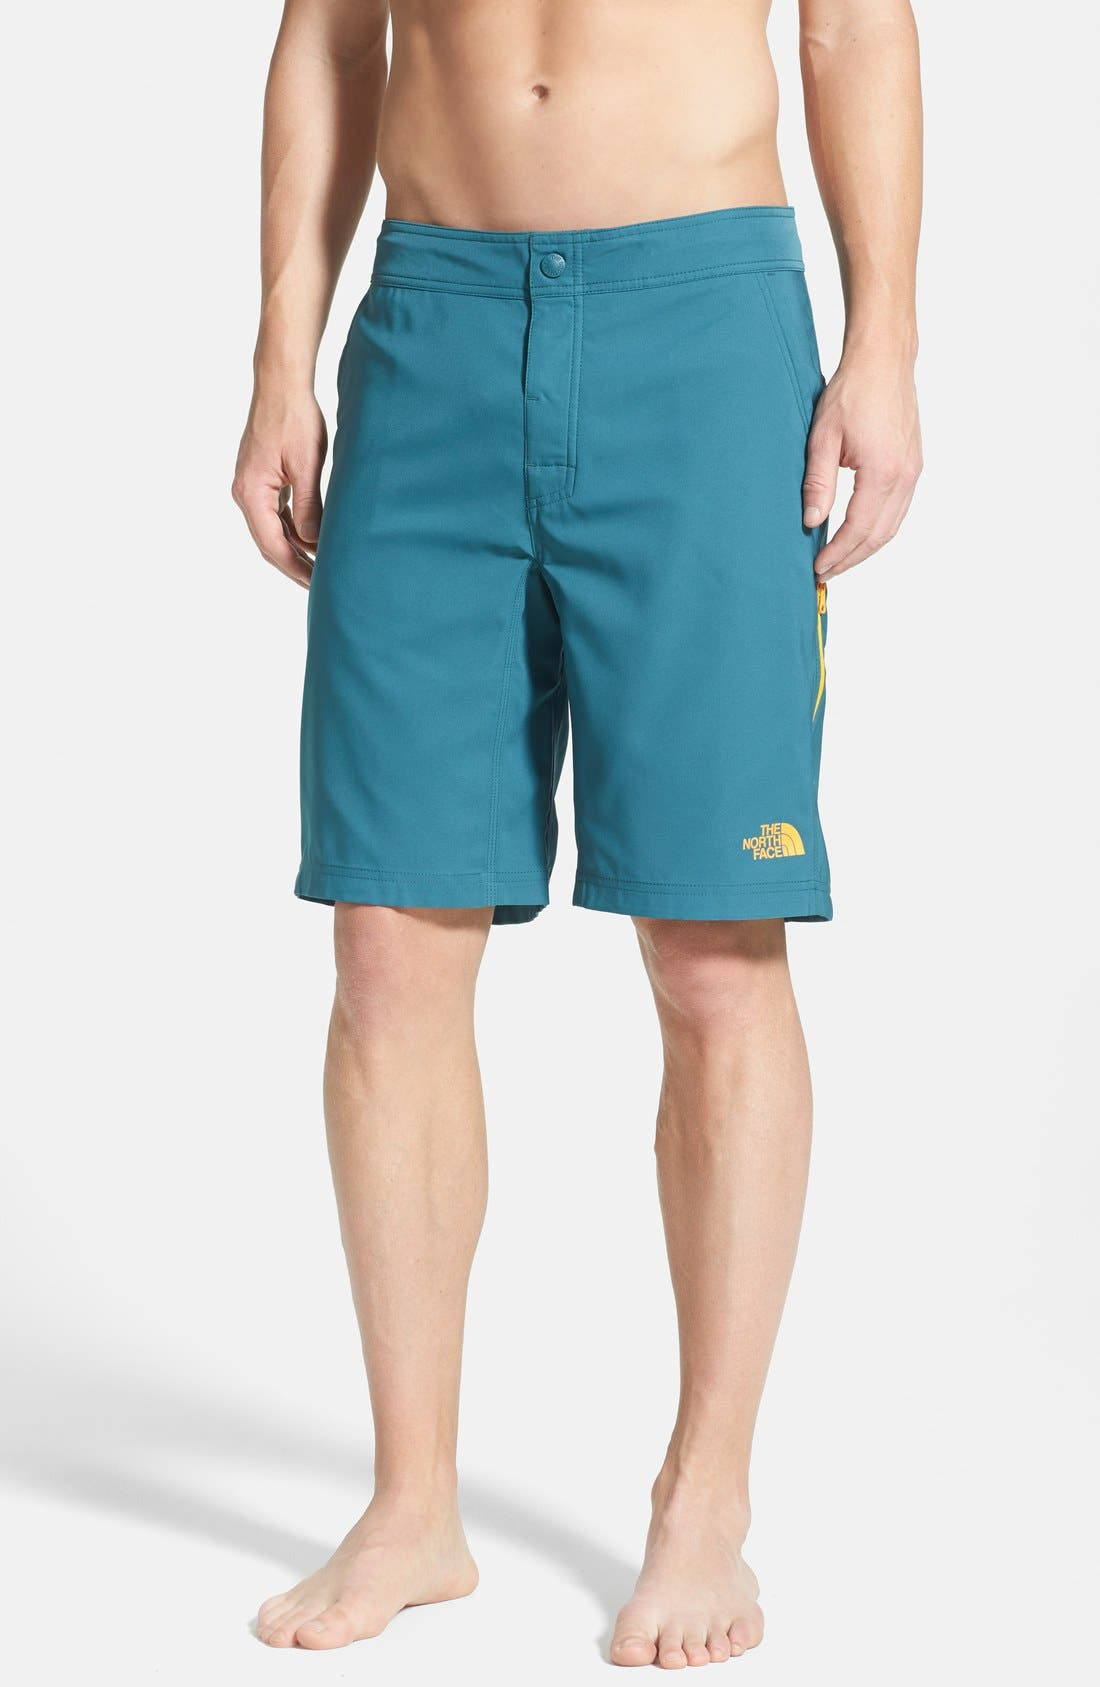 Alternate Image 1 Selected - The North Face Board Shorts